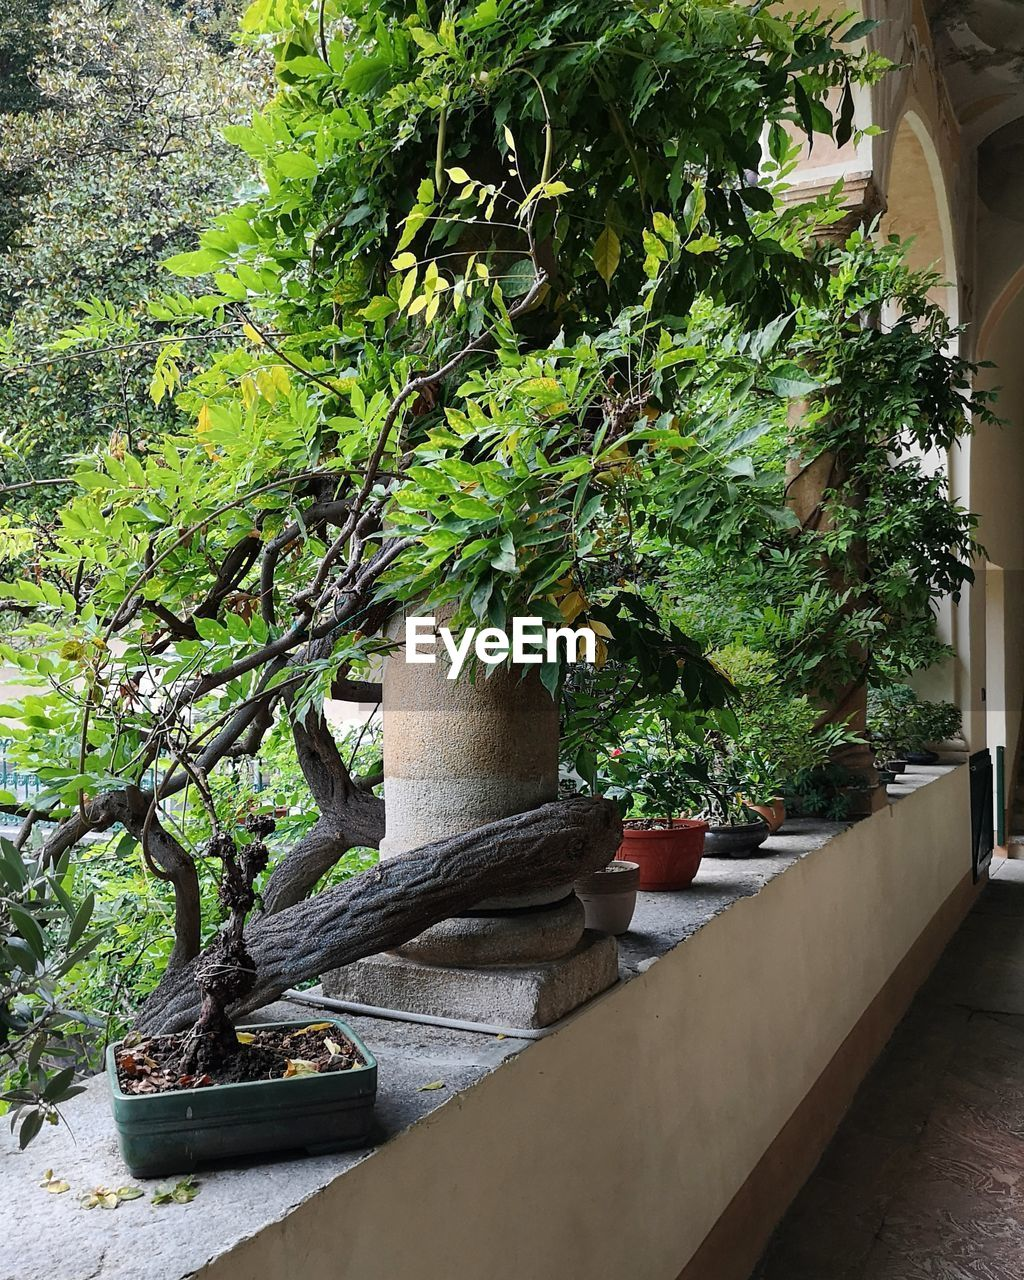 plant, growth, tree, nature, potted plant, no people, green color, day, outdoors, plant part, beauty in nature, leaf, architecture, front or back yard, bonsai tree, built structure, tranquility, close-up, decoration, flower pot, houseplant